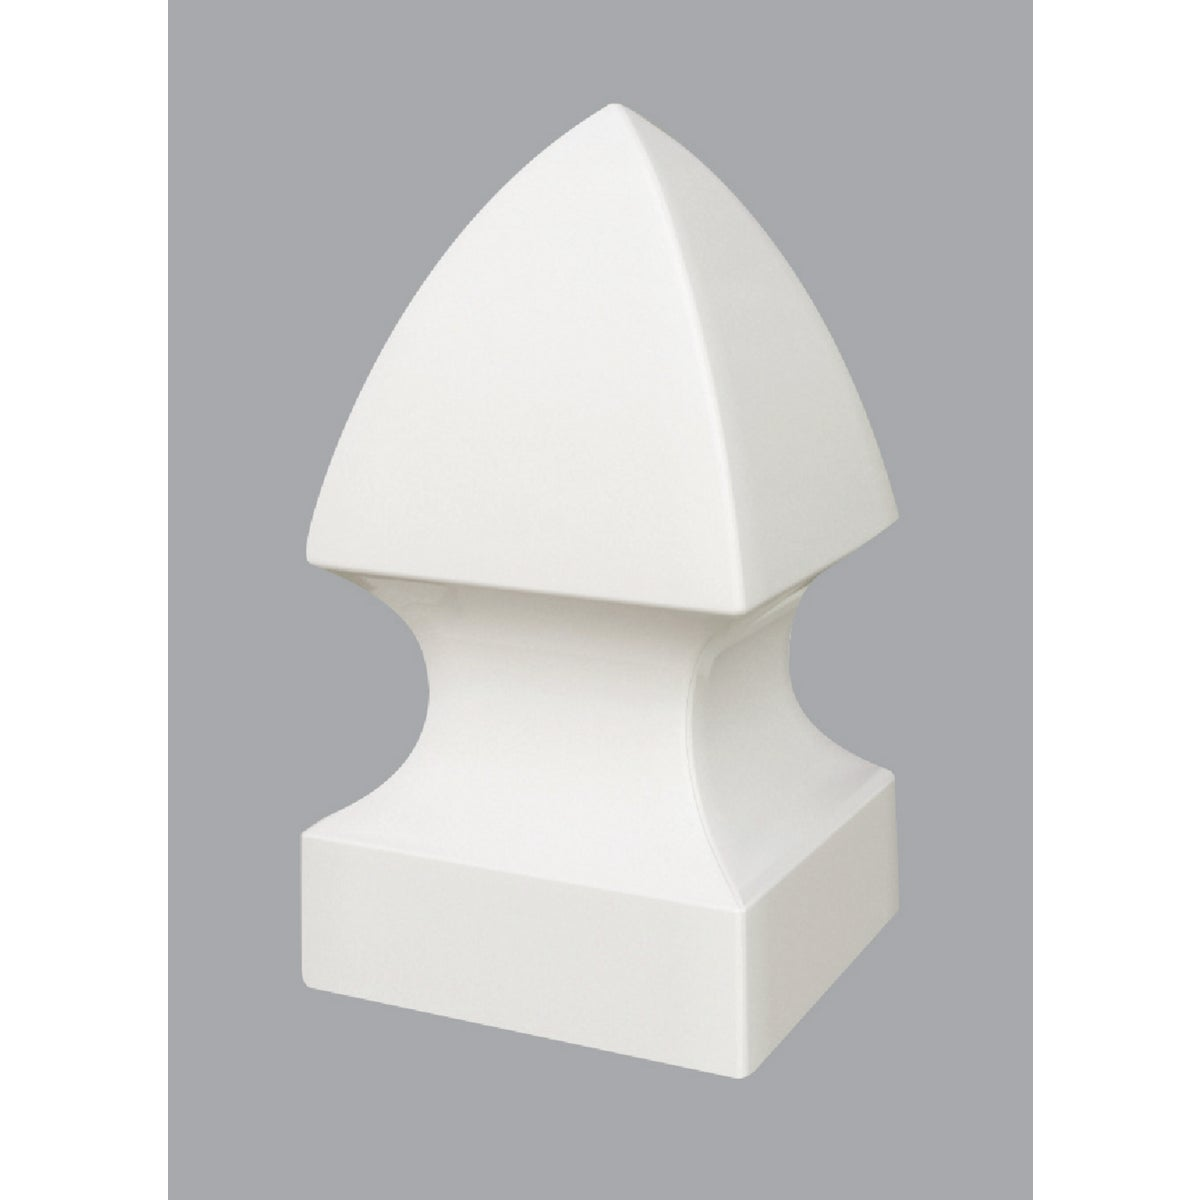 4X4 VNL GOTHIC POST CAP - 127601 by Ufpi Lbr & Treated